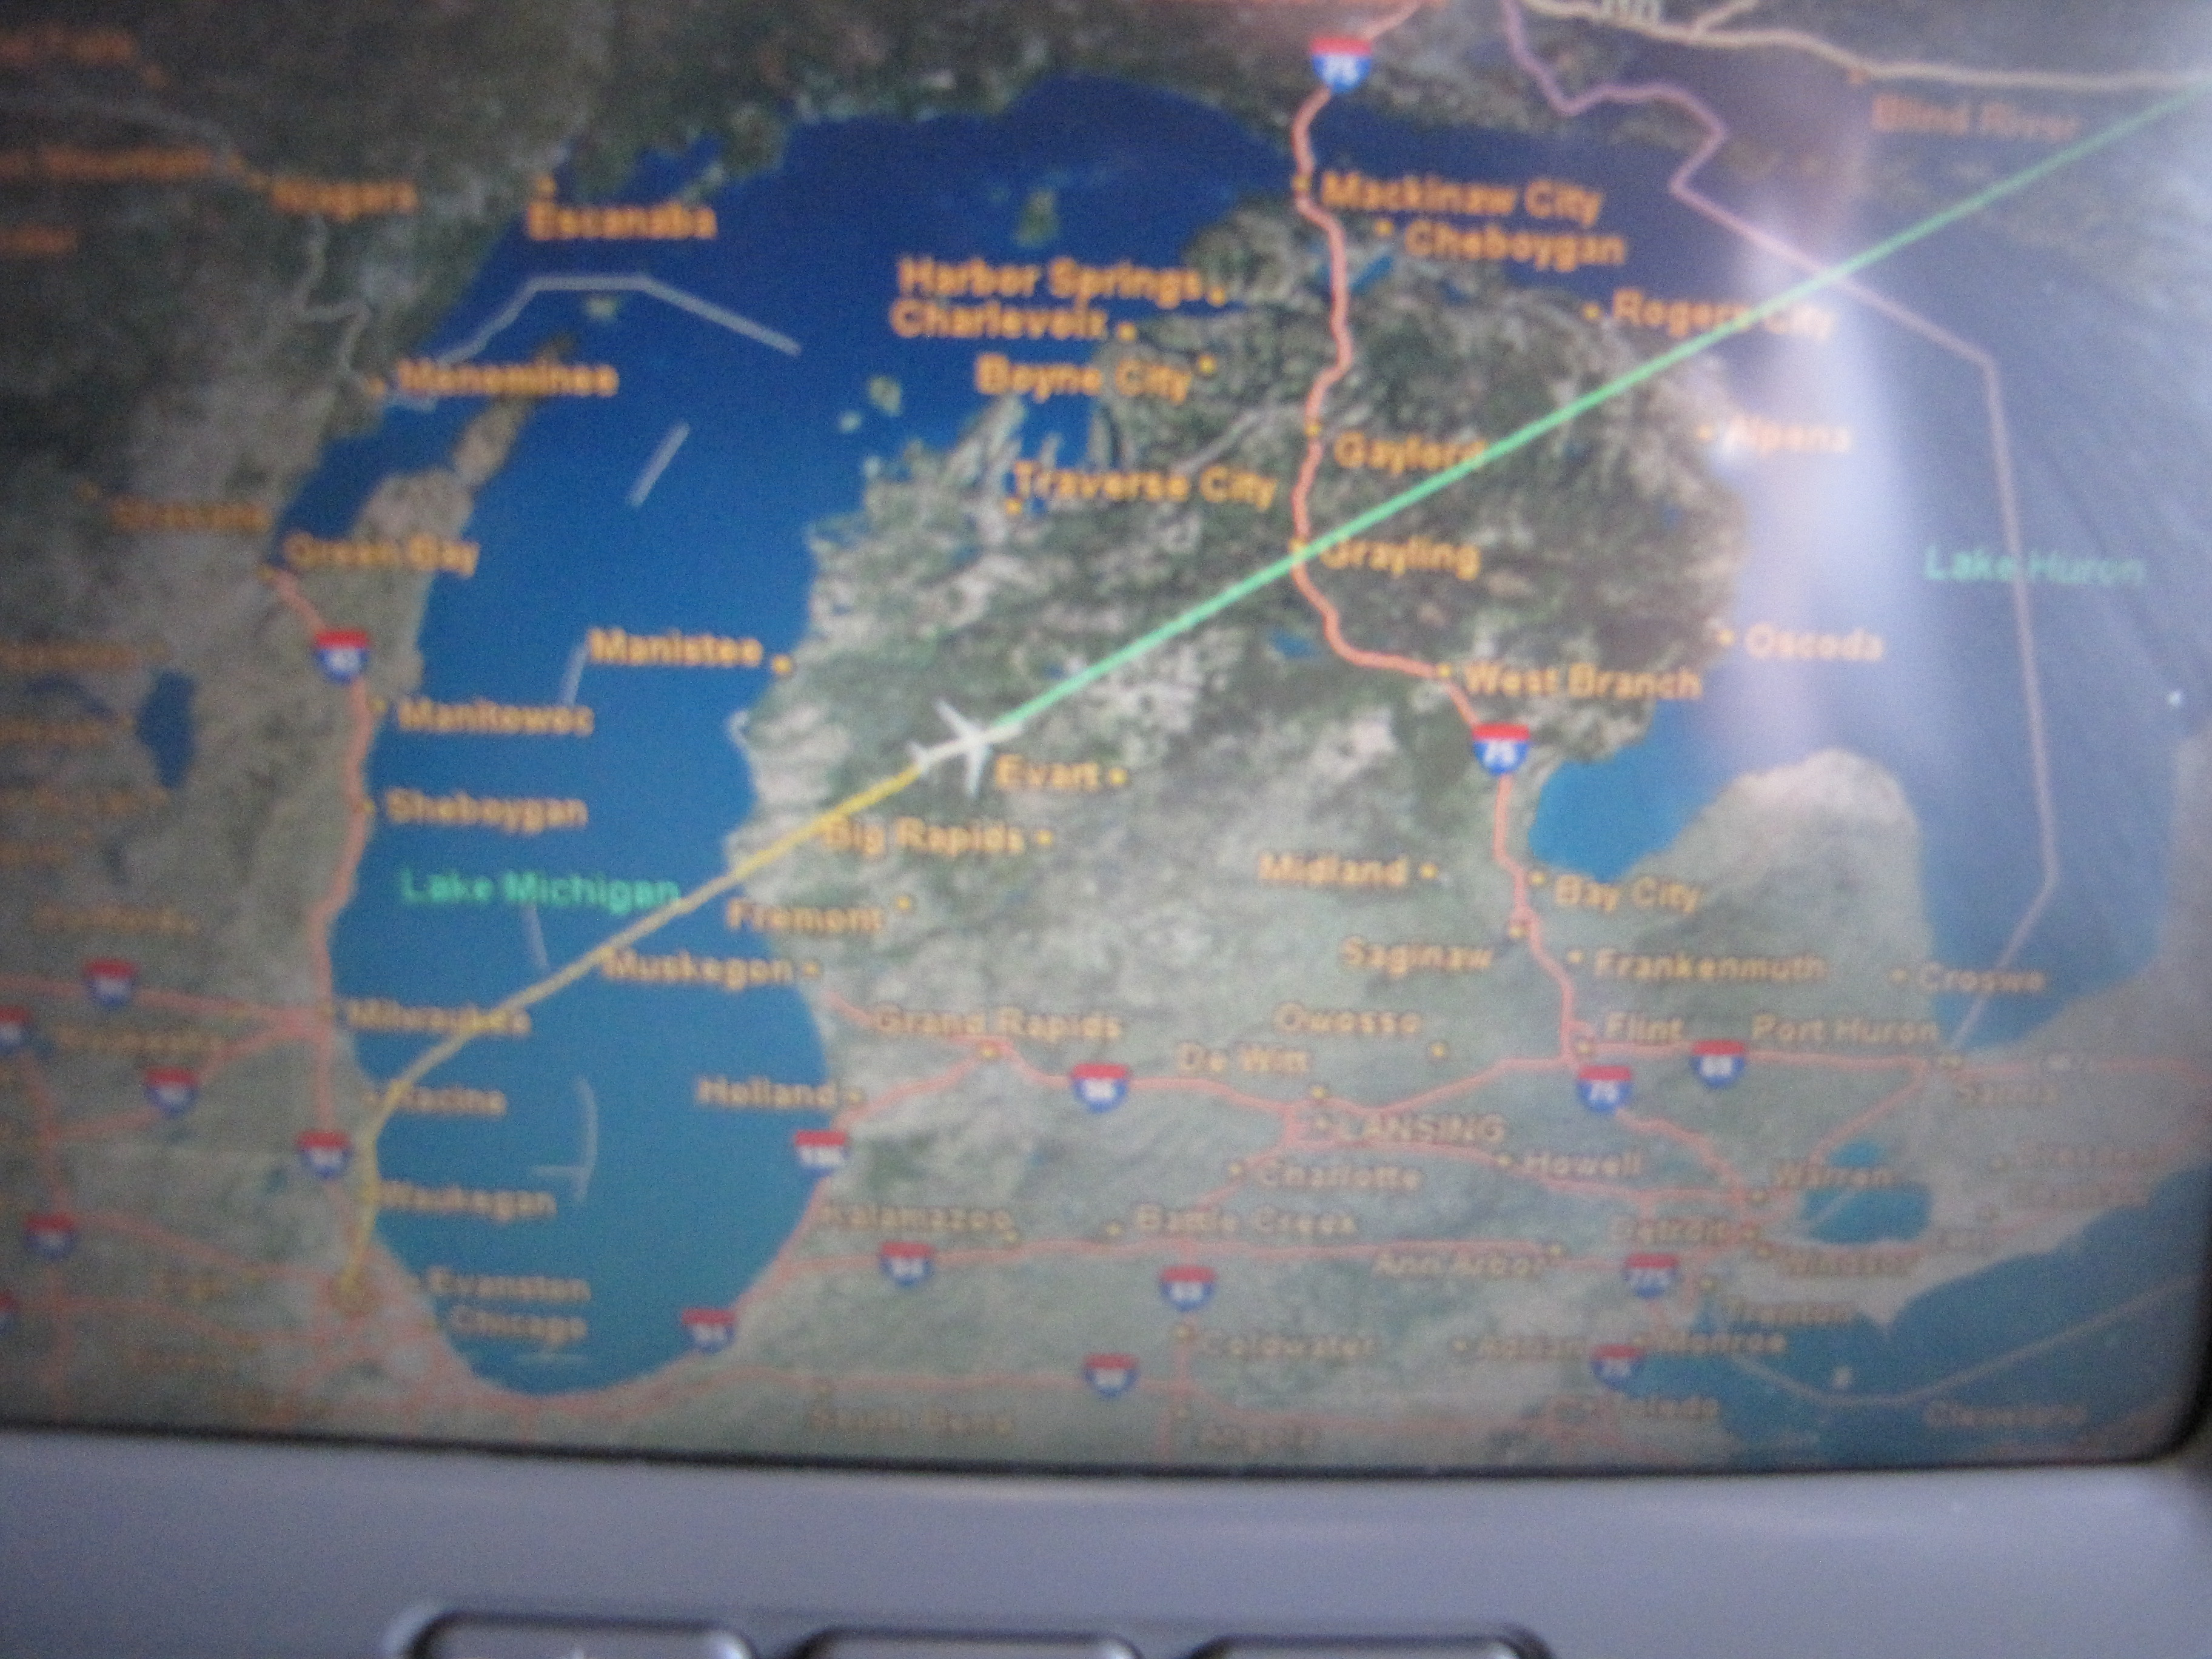 The flight to ireland wanderings picture of map on the plane as we were flying chicago through michigan publicscrutiny Choice Image